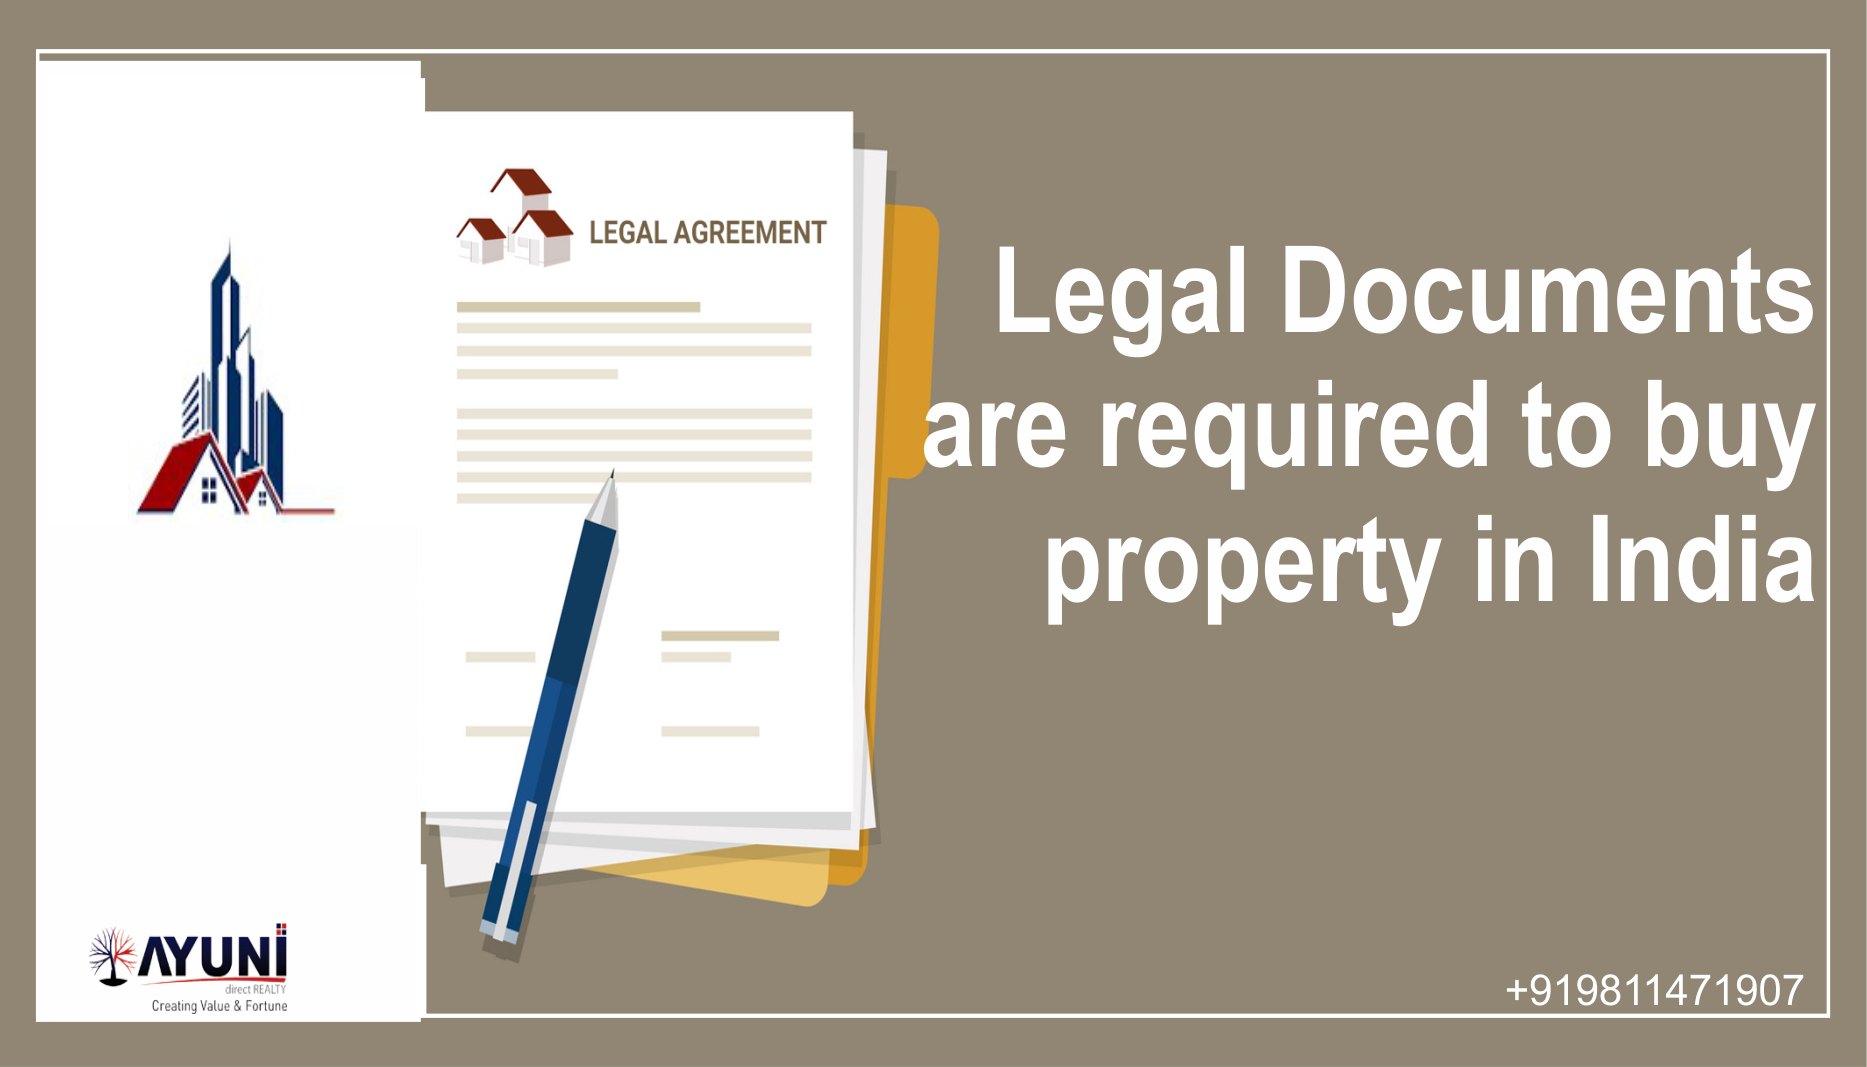 Legal Documents are required to buy property in India